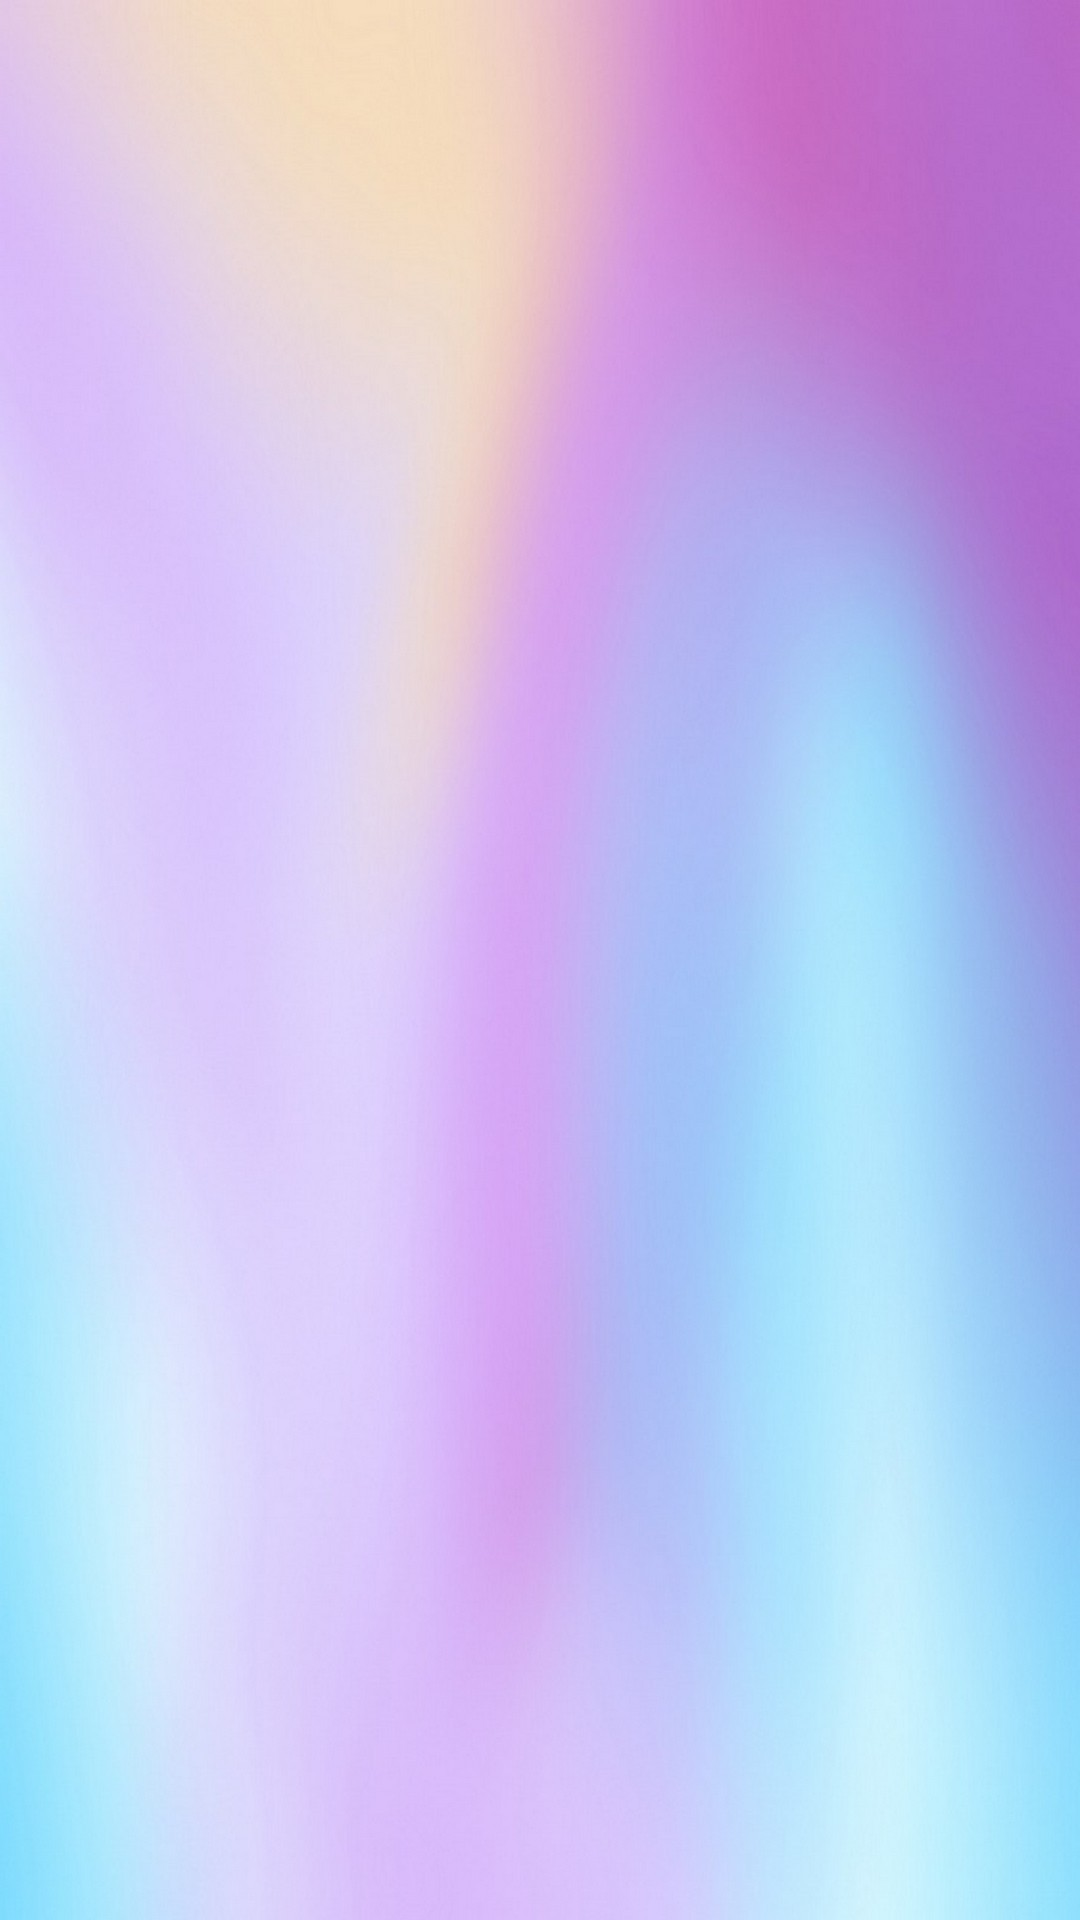 Gradient Iphone Home Screen Wallpaper With High-resolution - Home Screen Wallpapers For Iphone , HD Wallpaper & Backgrounds